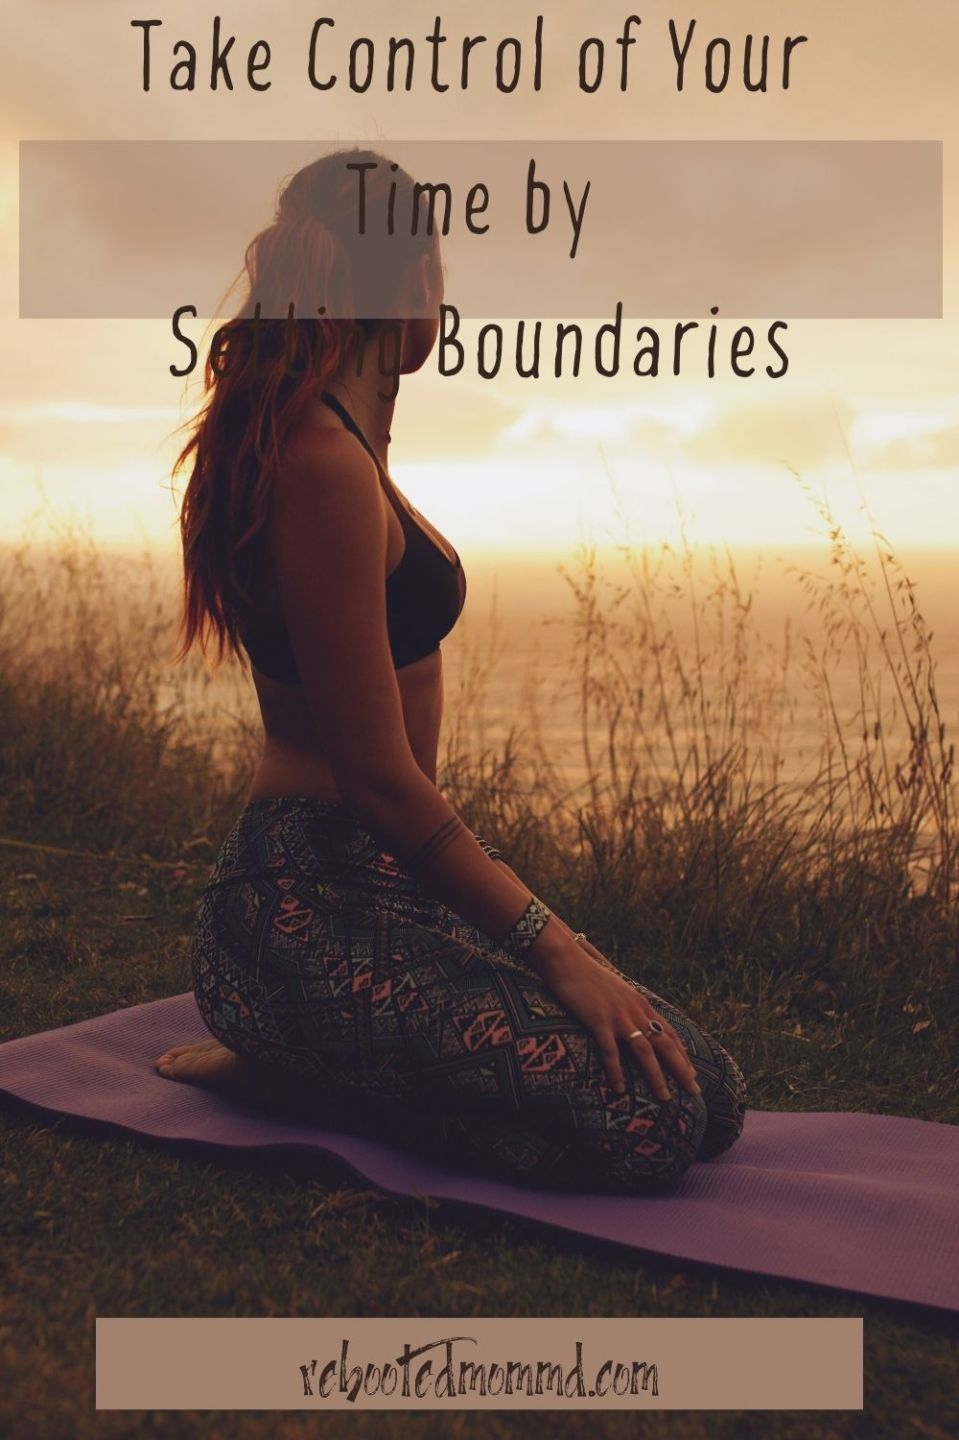 Take Control of Your Time - Set Some Boundaries